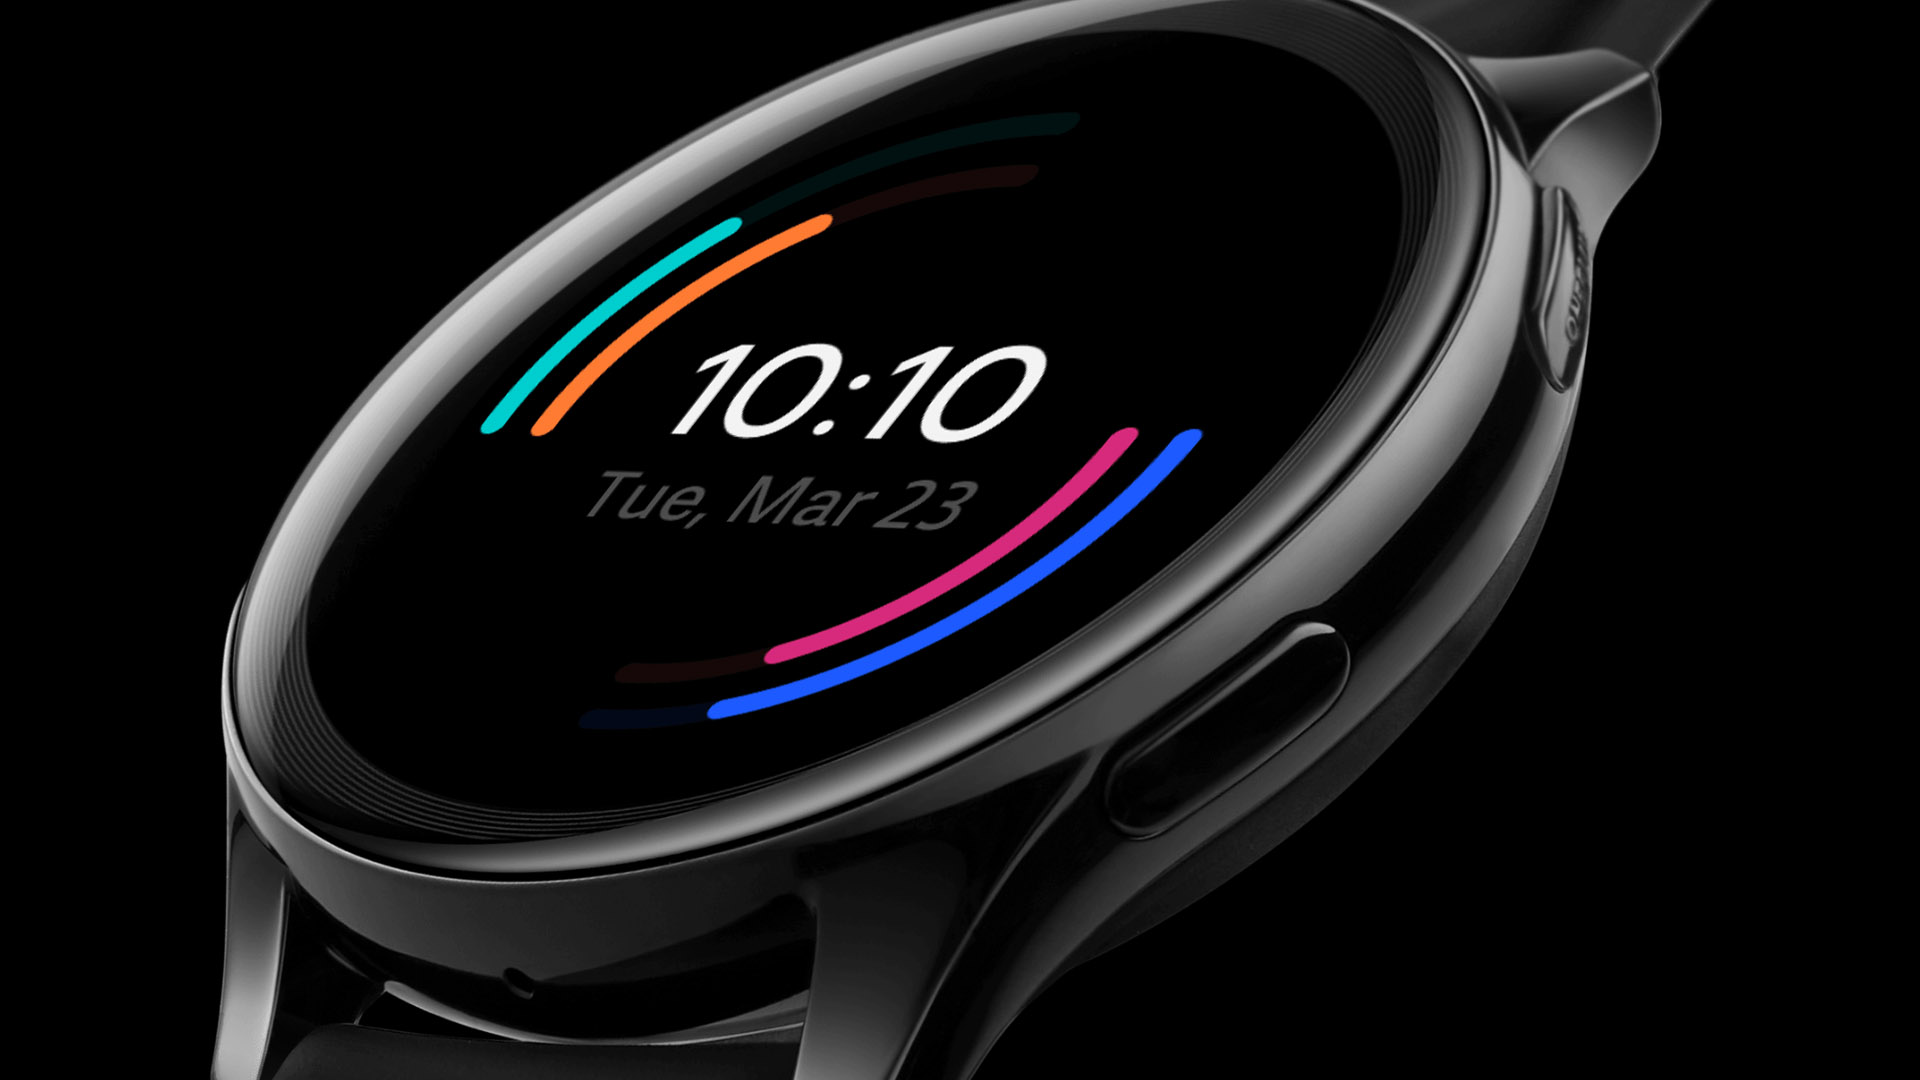 What's newly introduced in the OnePlus Watch with the update?